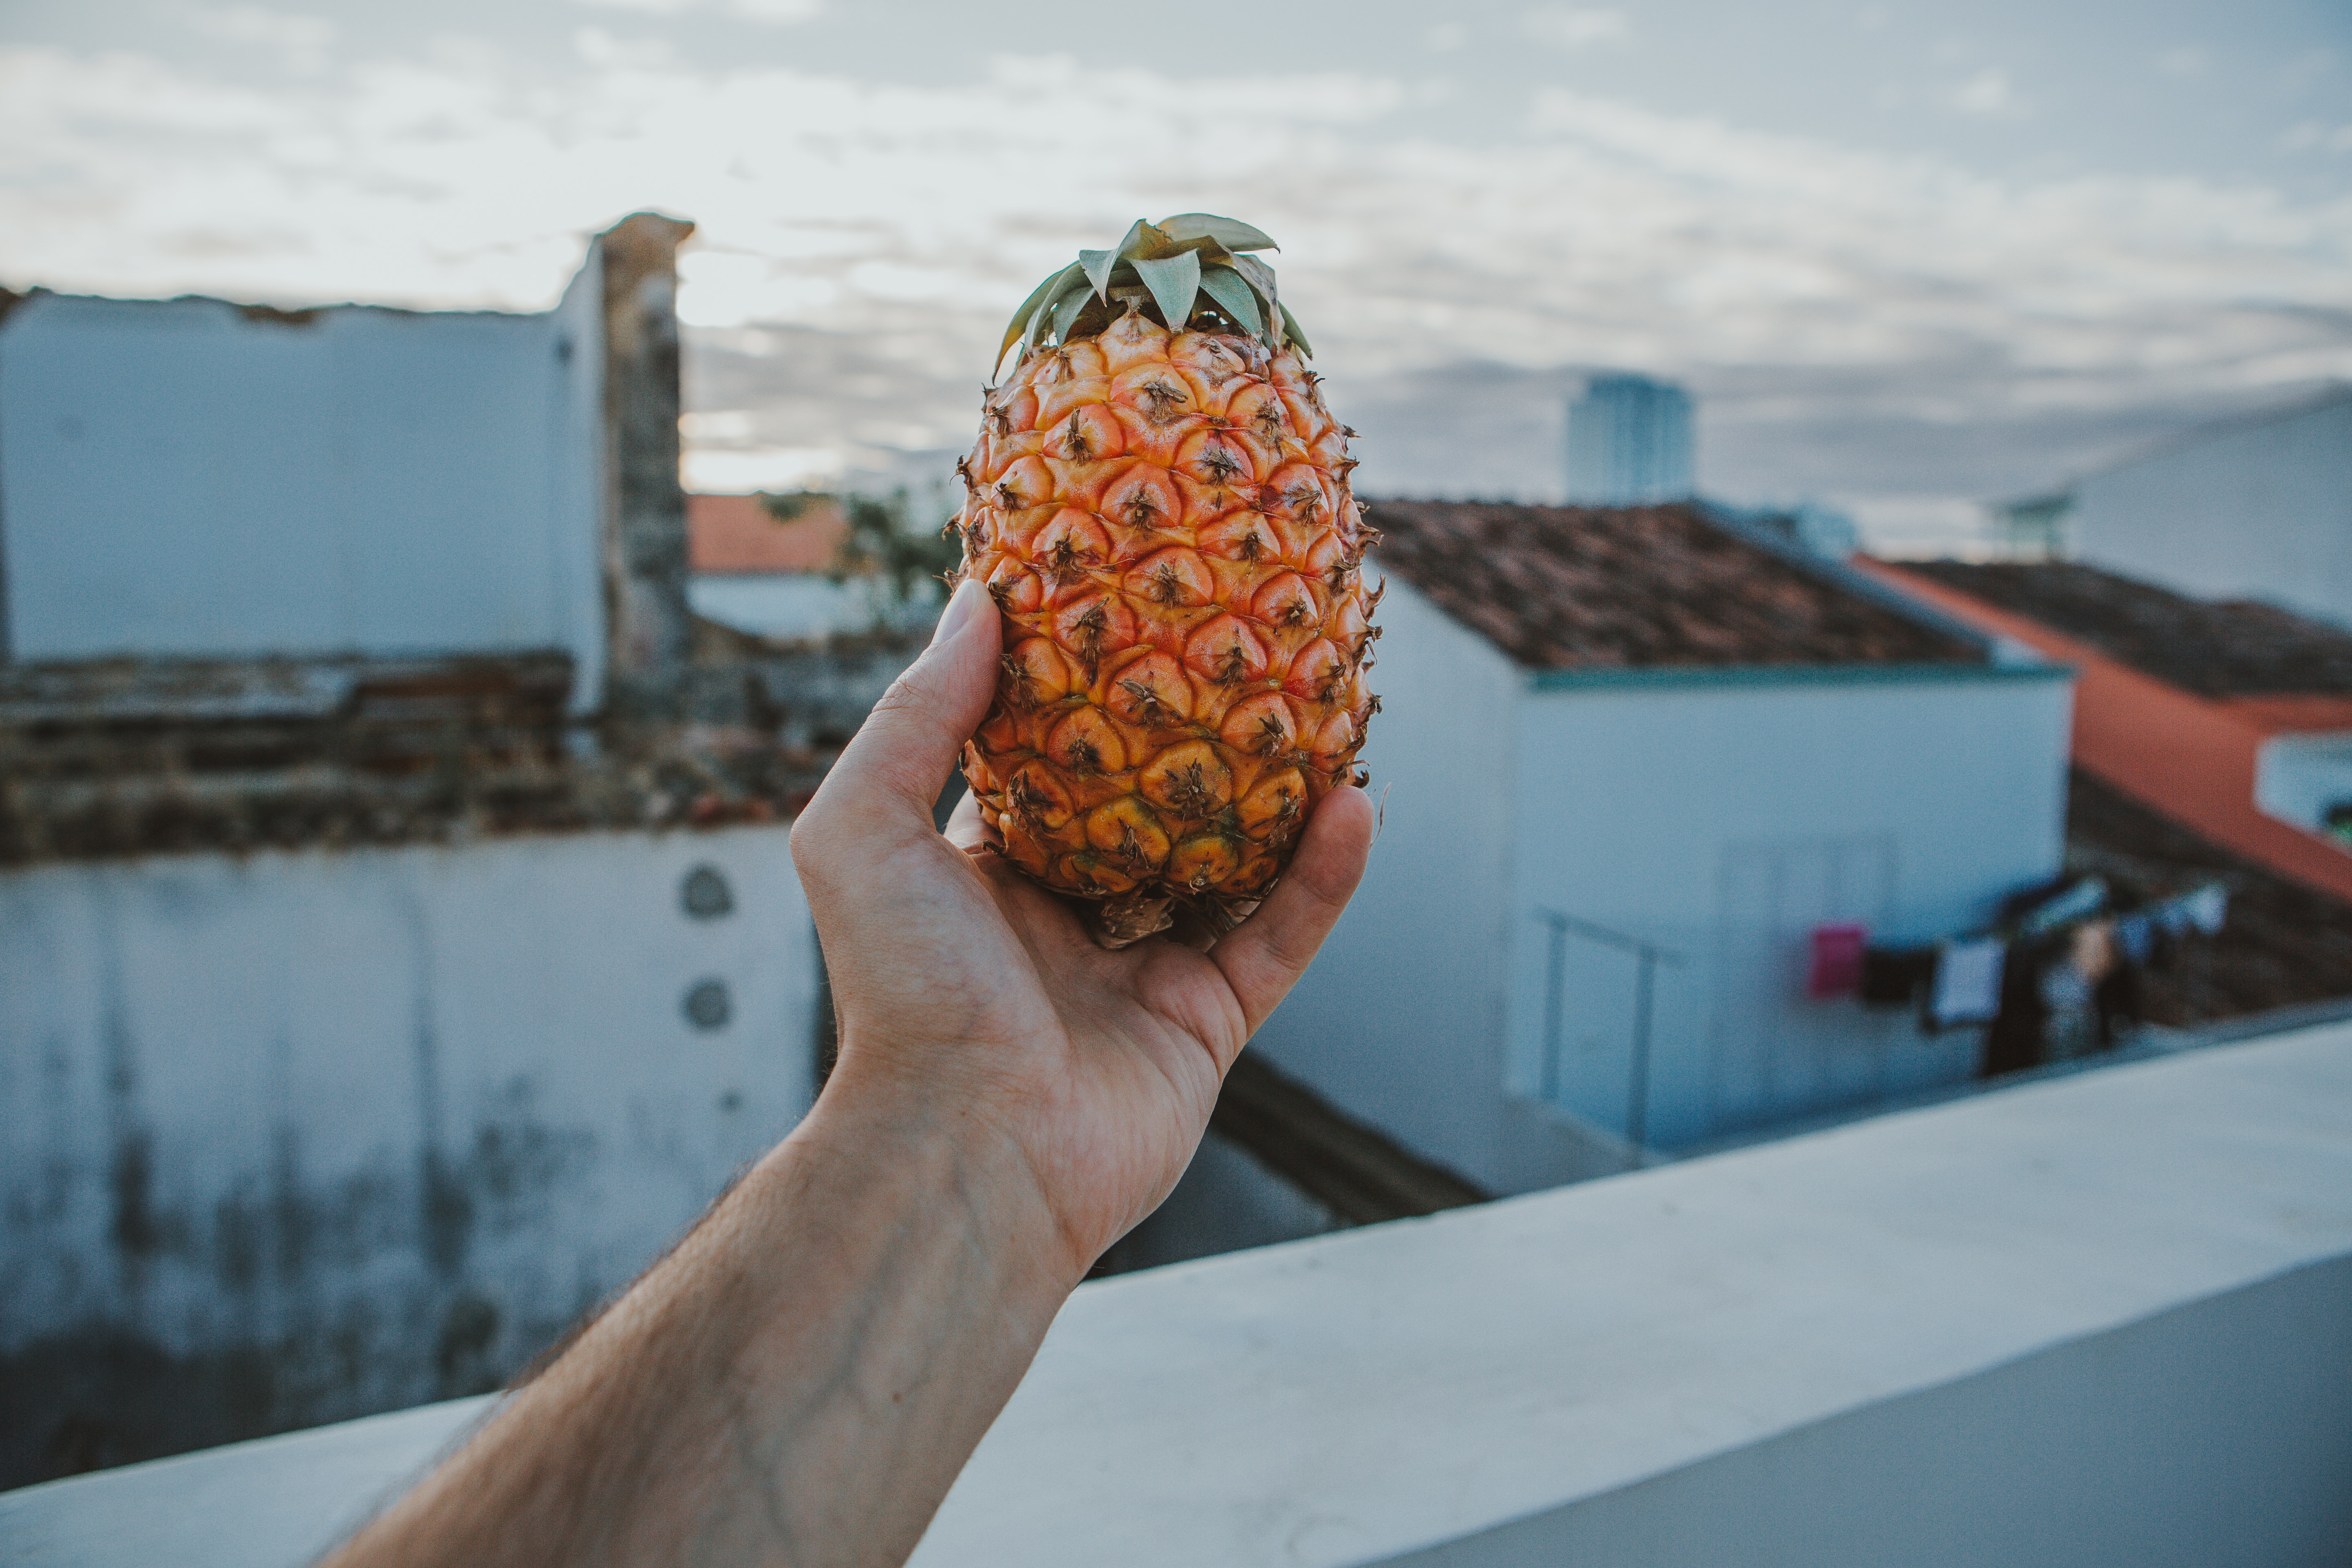 person holding pineapple